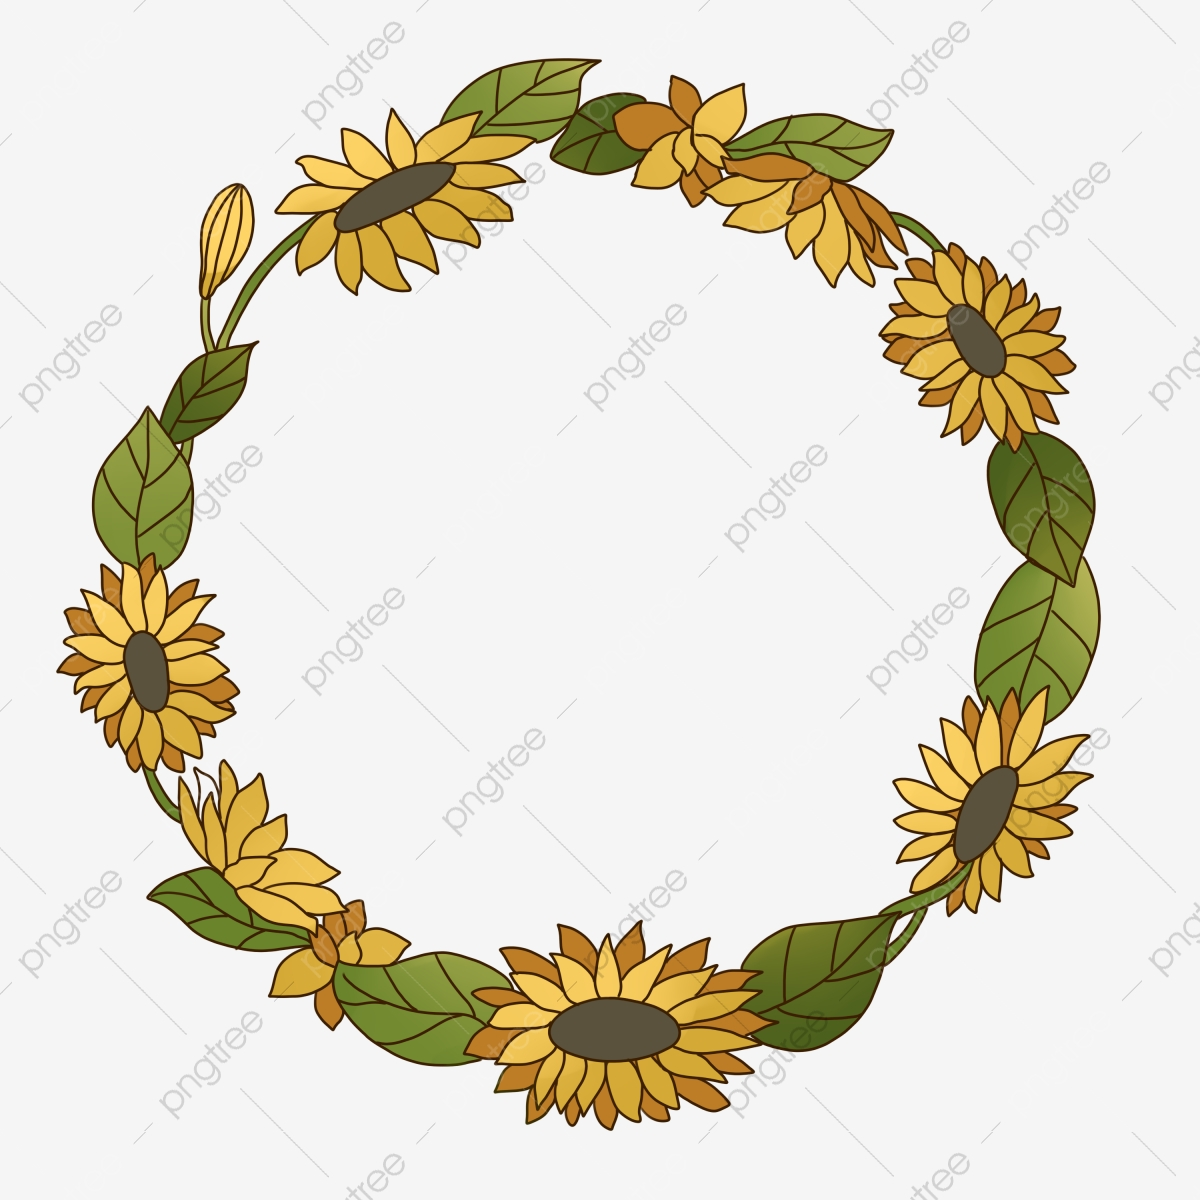 Yellow Sunflower Wreath Illustration Yellow Sunflower Yellow Flowers Flowers Png Transparent Clipart Image And Psd File For Free Download